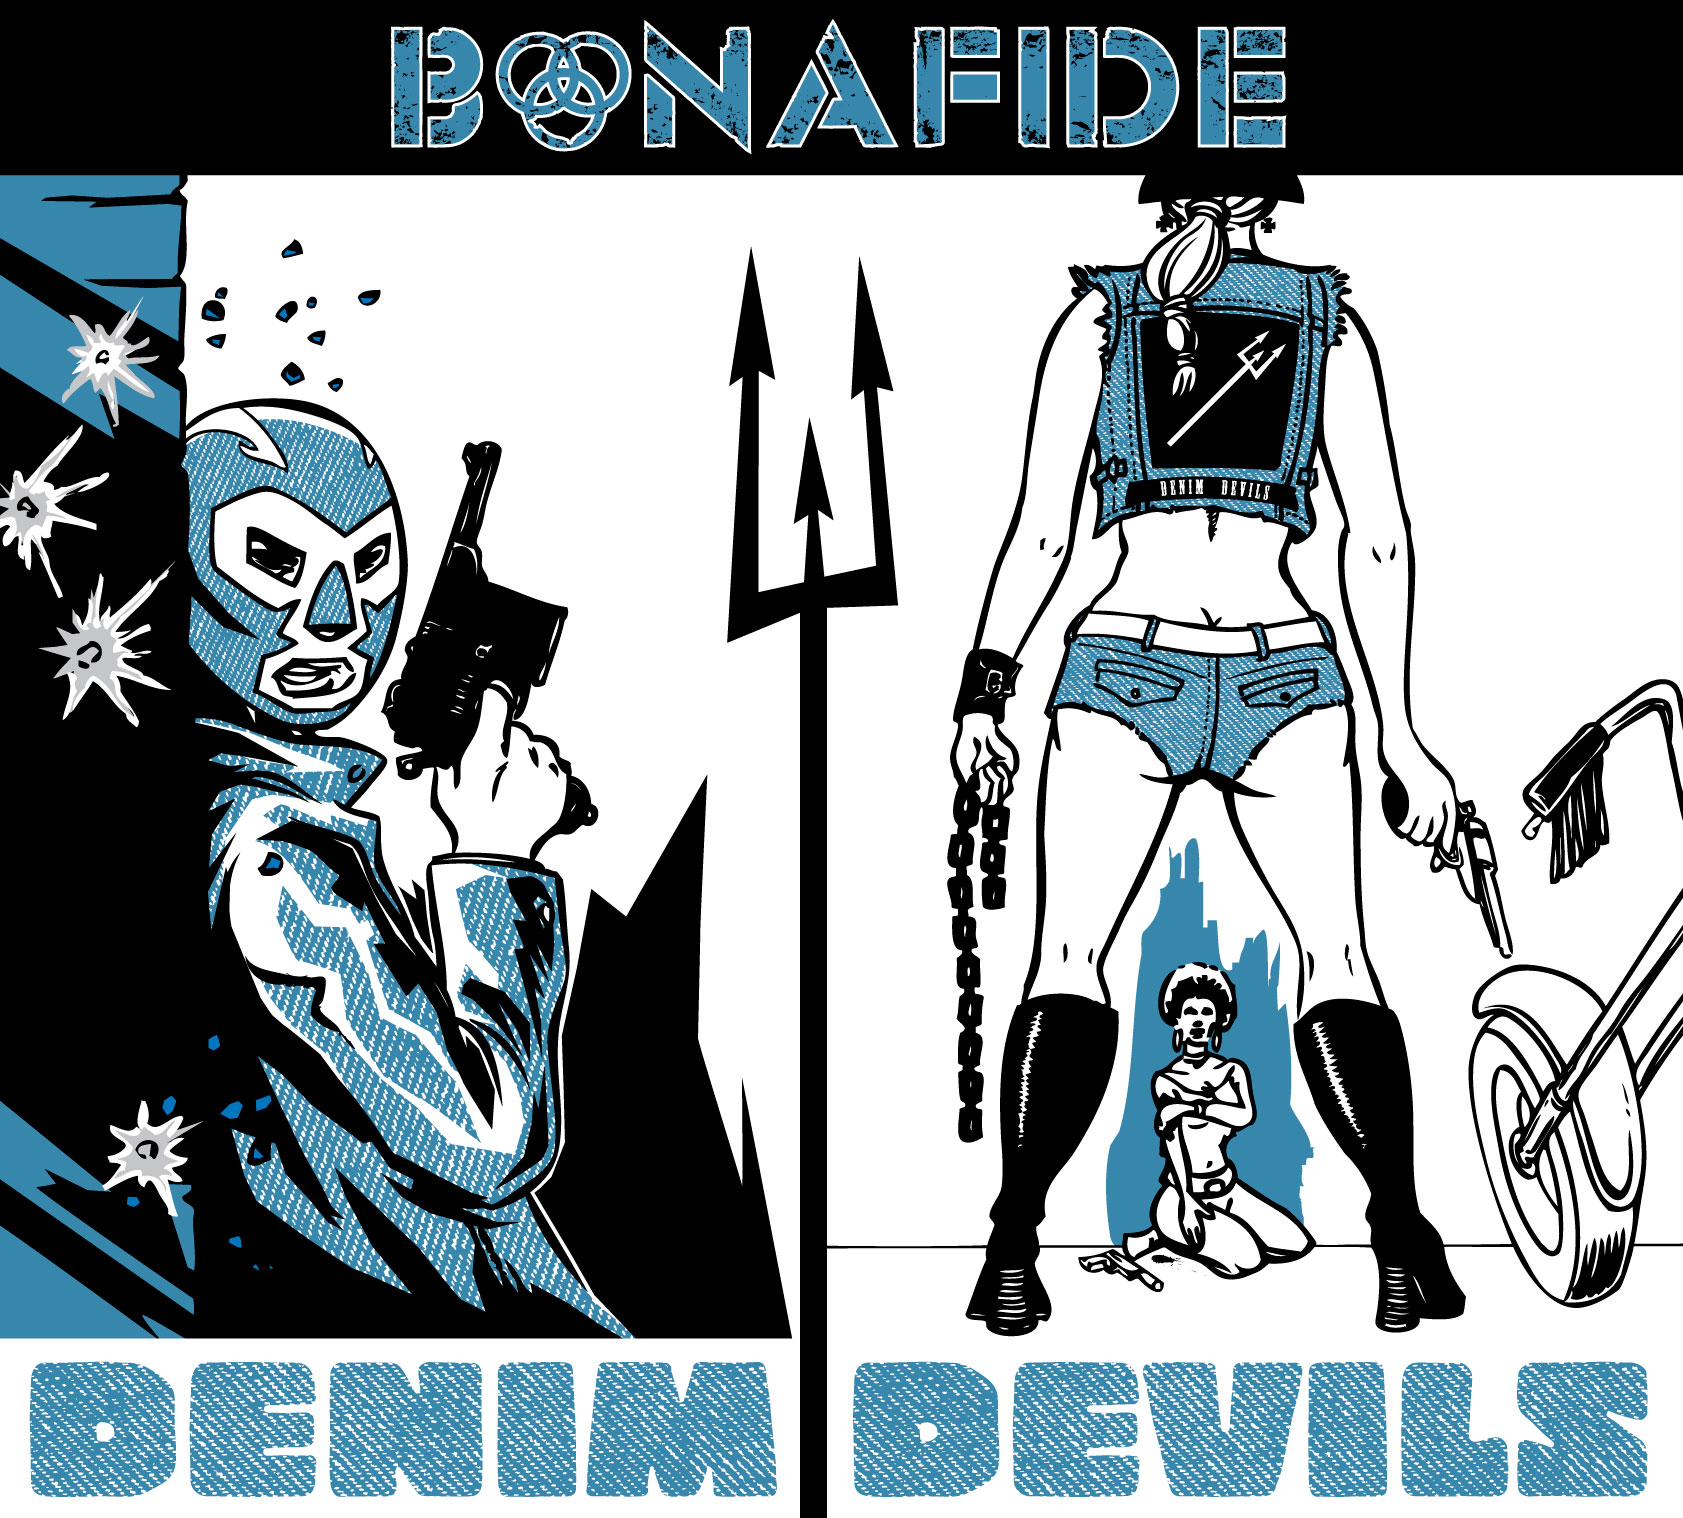 Bonafide - Denim Devil